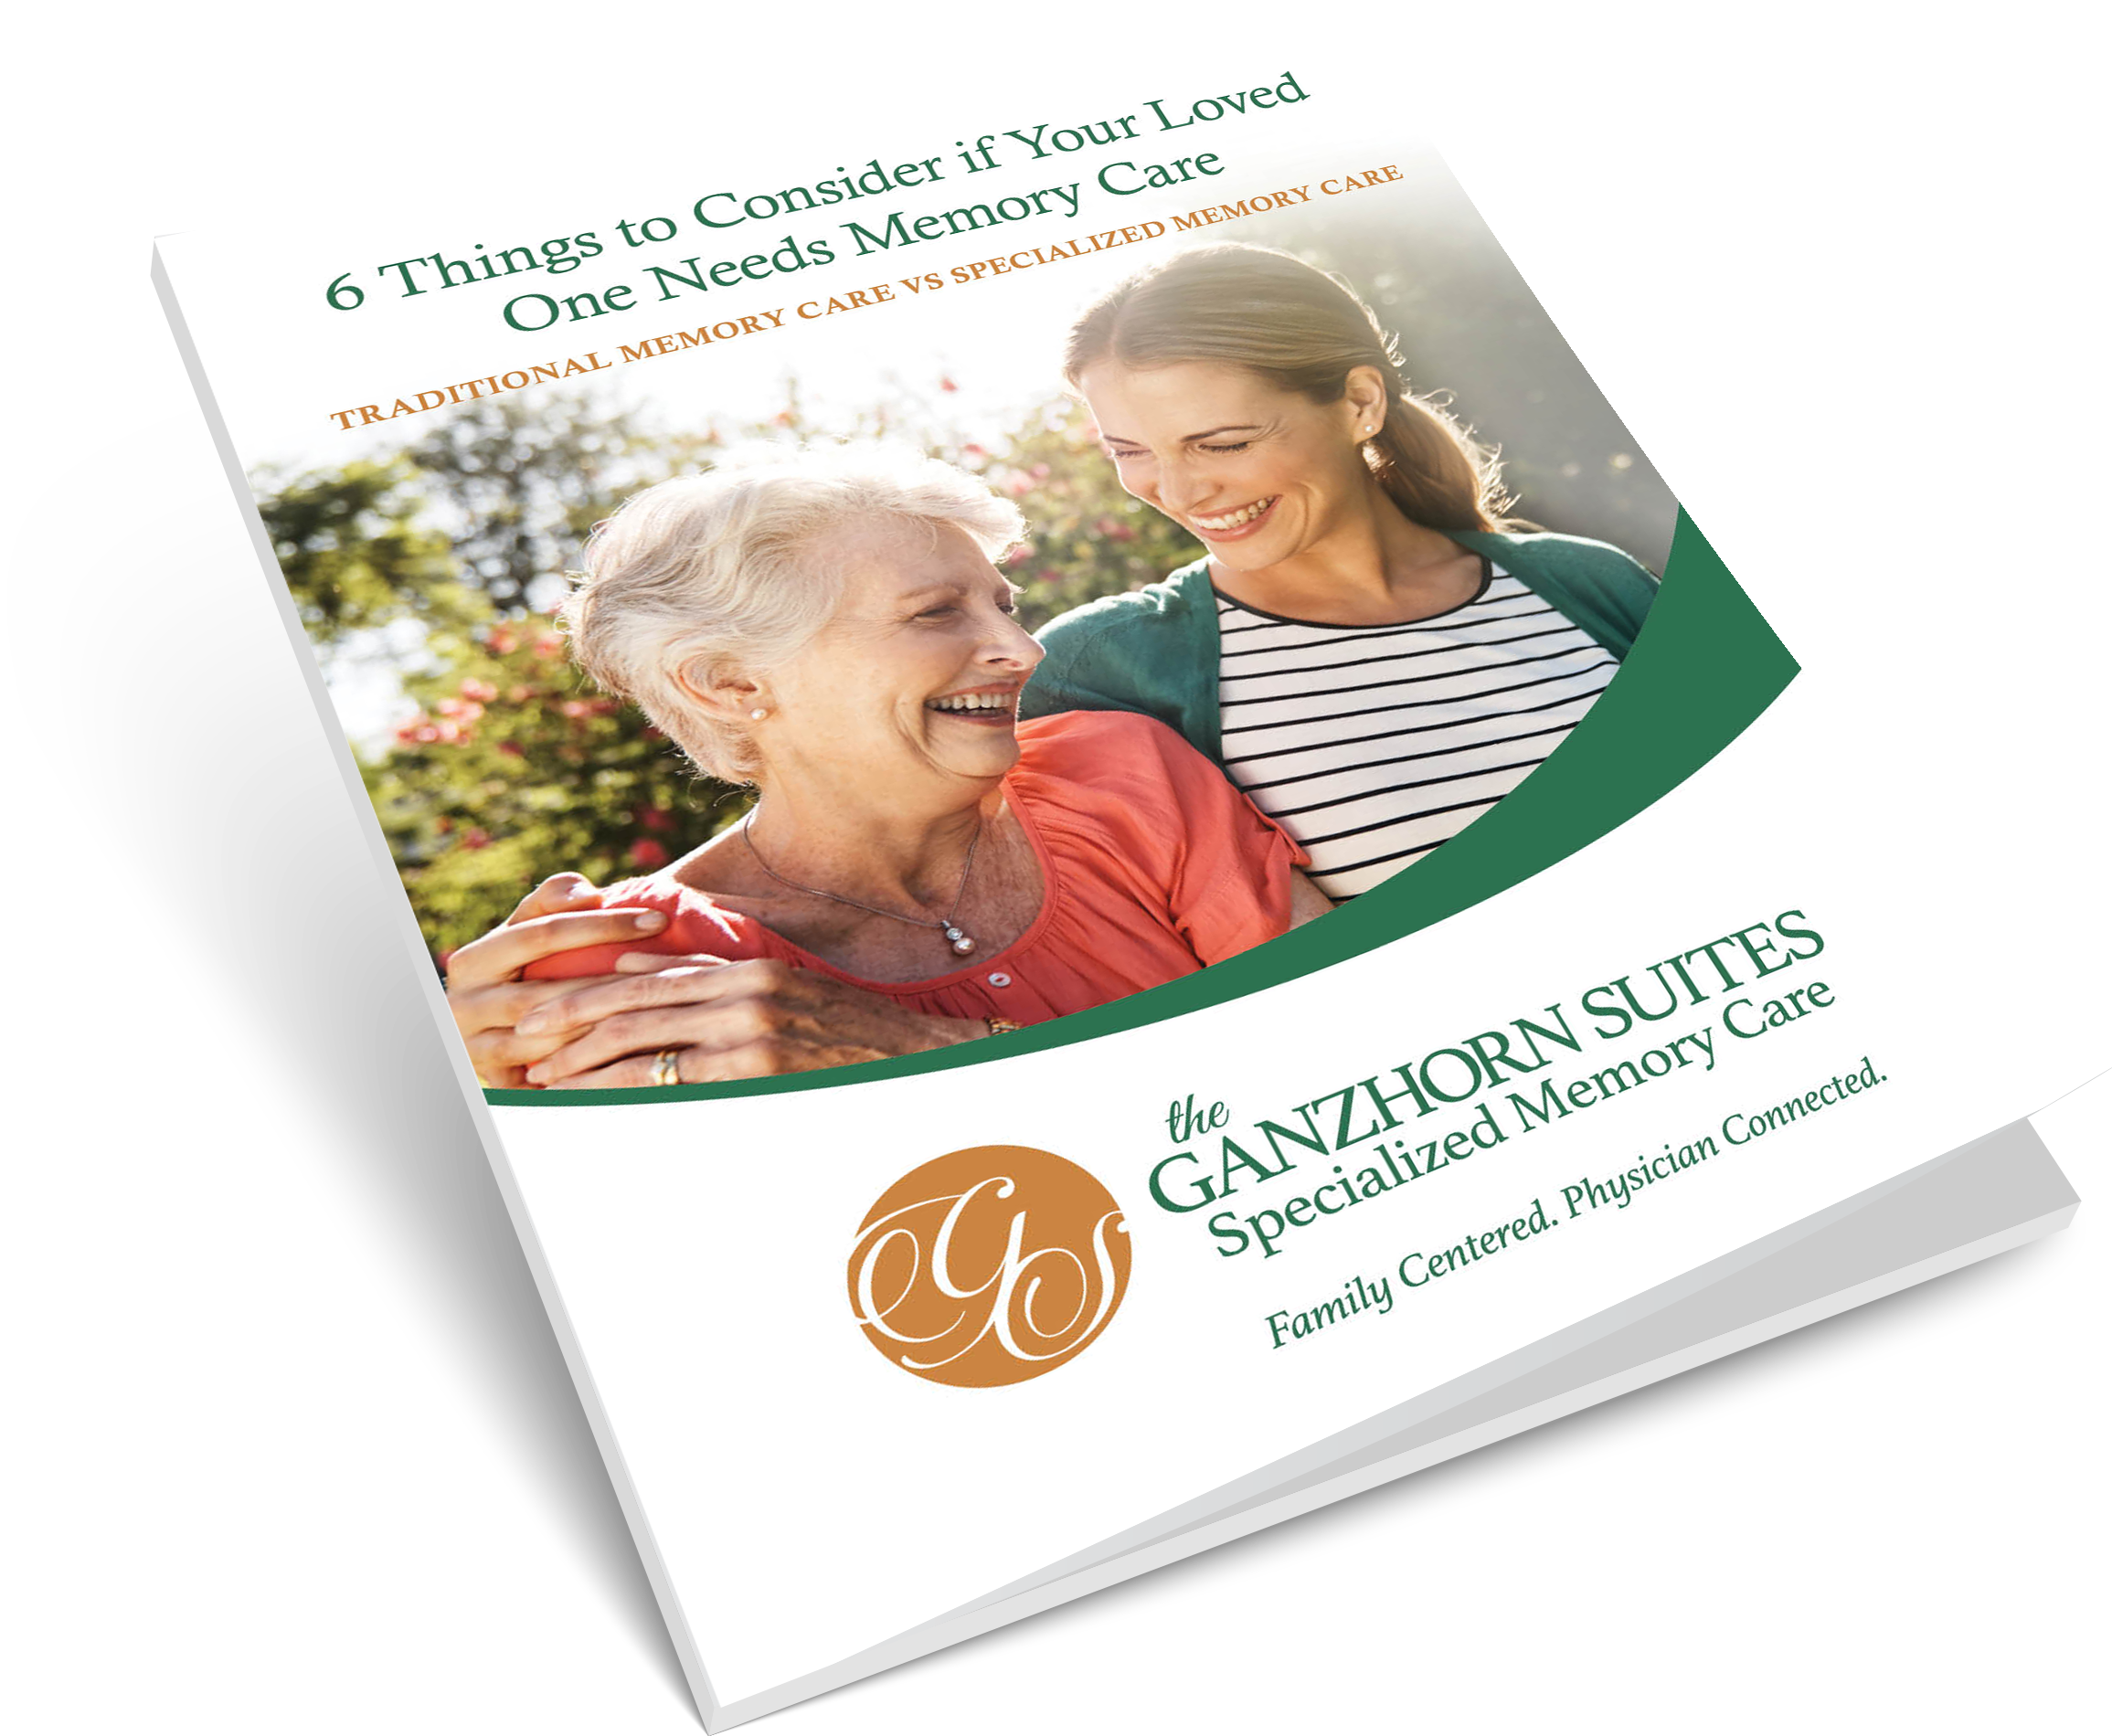 Learn the Difference: Traditional Memory Care vs. Specialized Memory Care